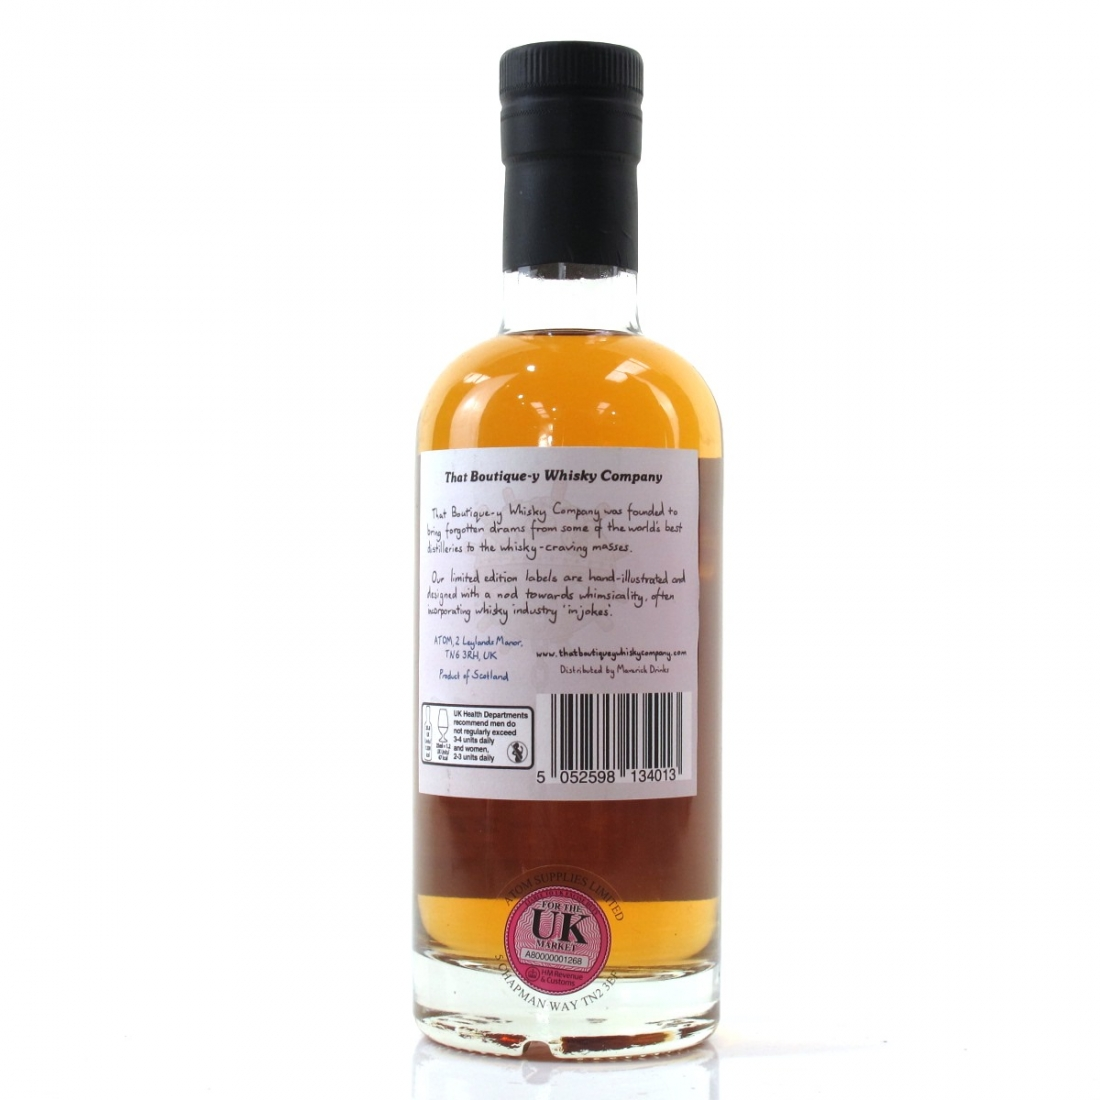 Dalmore 27 Year Old That Boutique-y Whisky Company Batch #1 / One of only 32